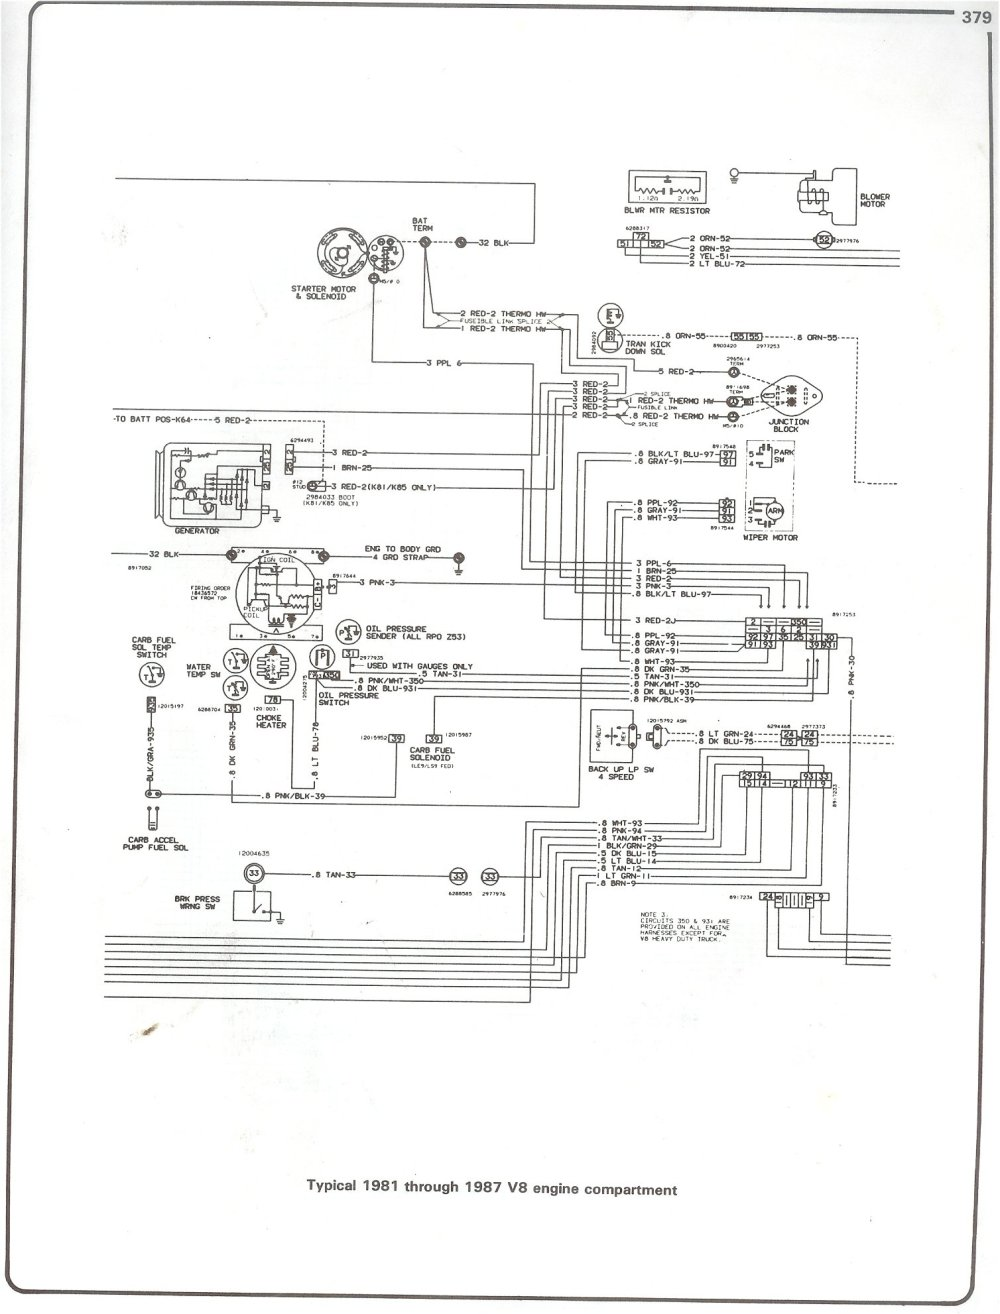 medium resolution of complete 73 87 wiring diagrams ford wiring schematics 81 87 v8 engine compartment